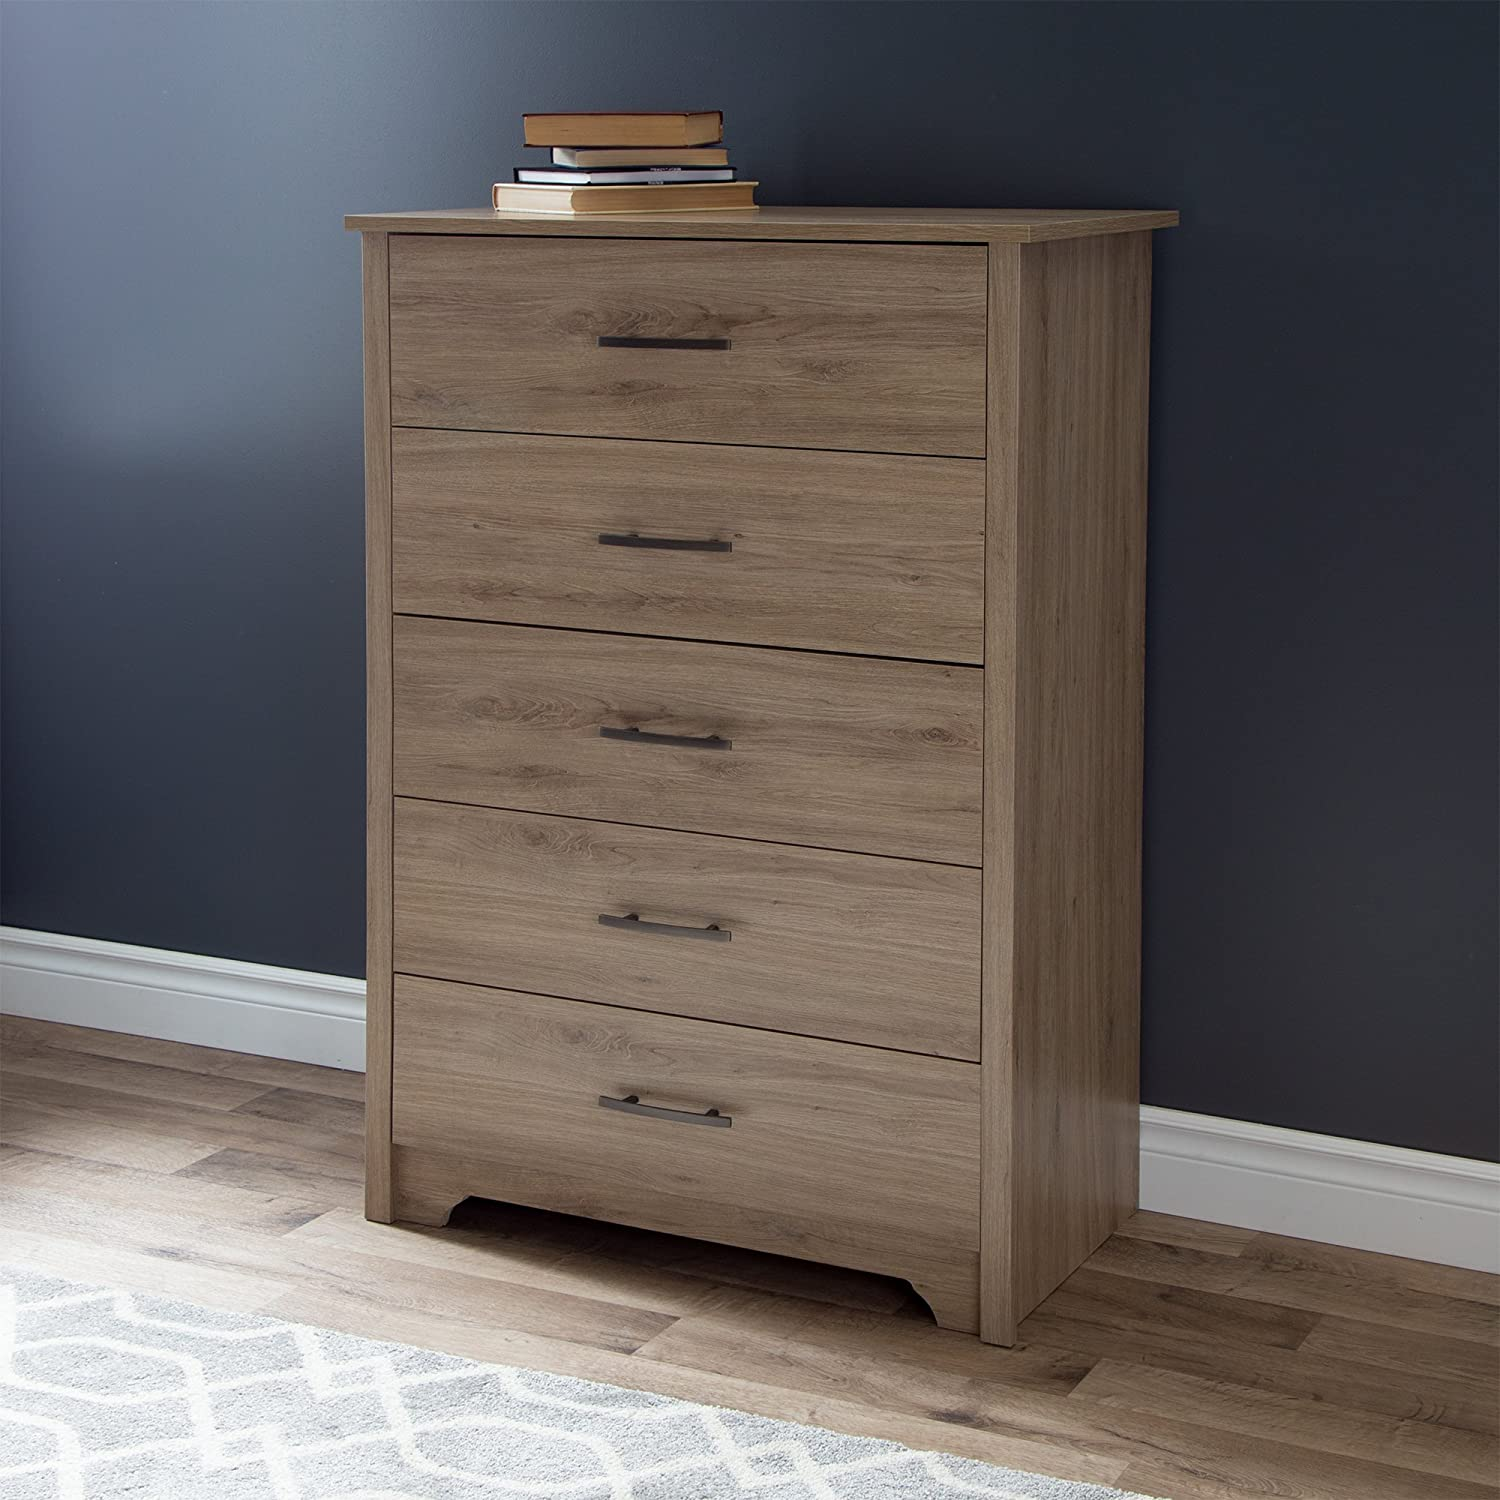 reviews double drawer shore step furniture one wayfair pdx south dresser